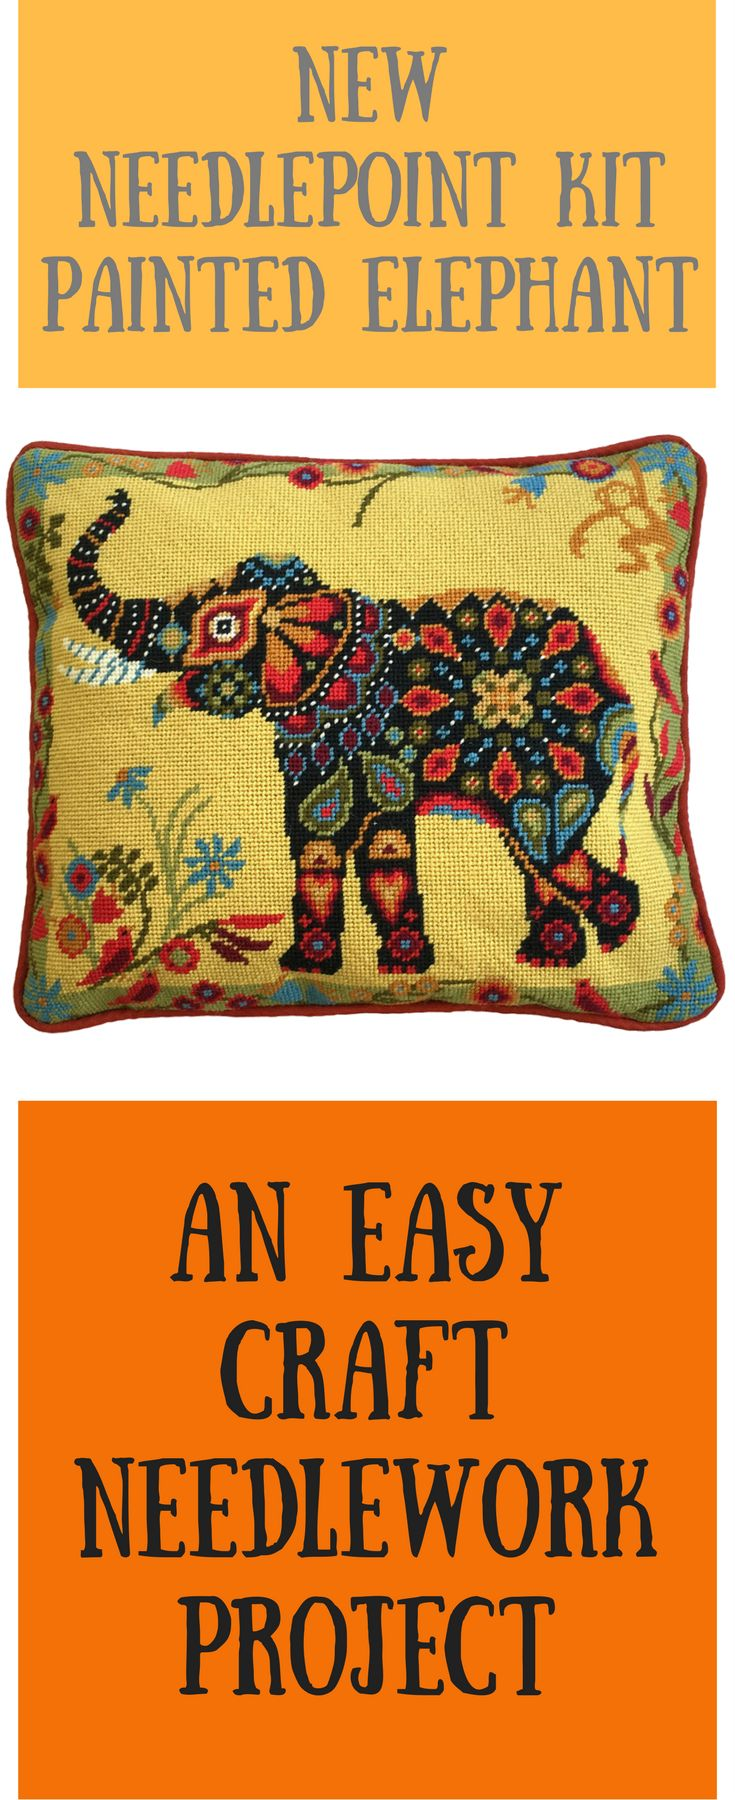 New needlepoint tapestry kit in a mandela style. Suitable for beginners.